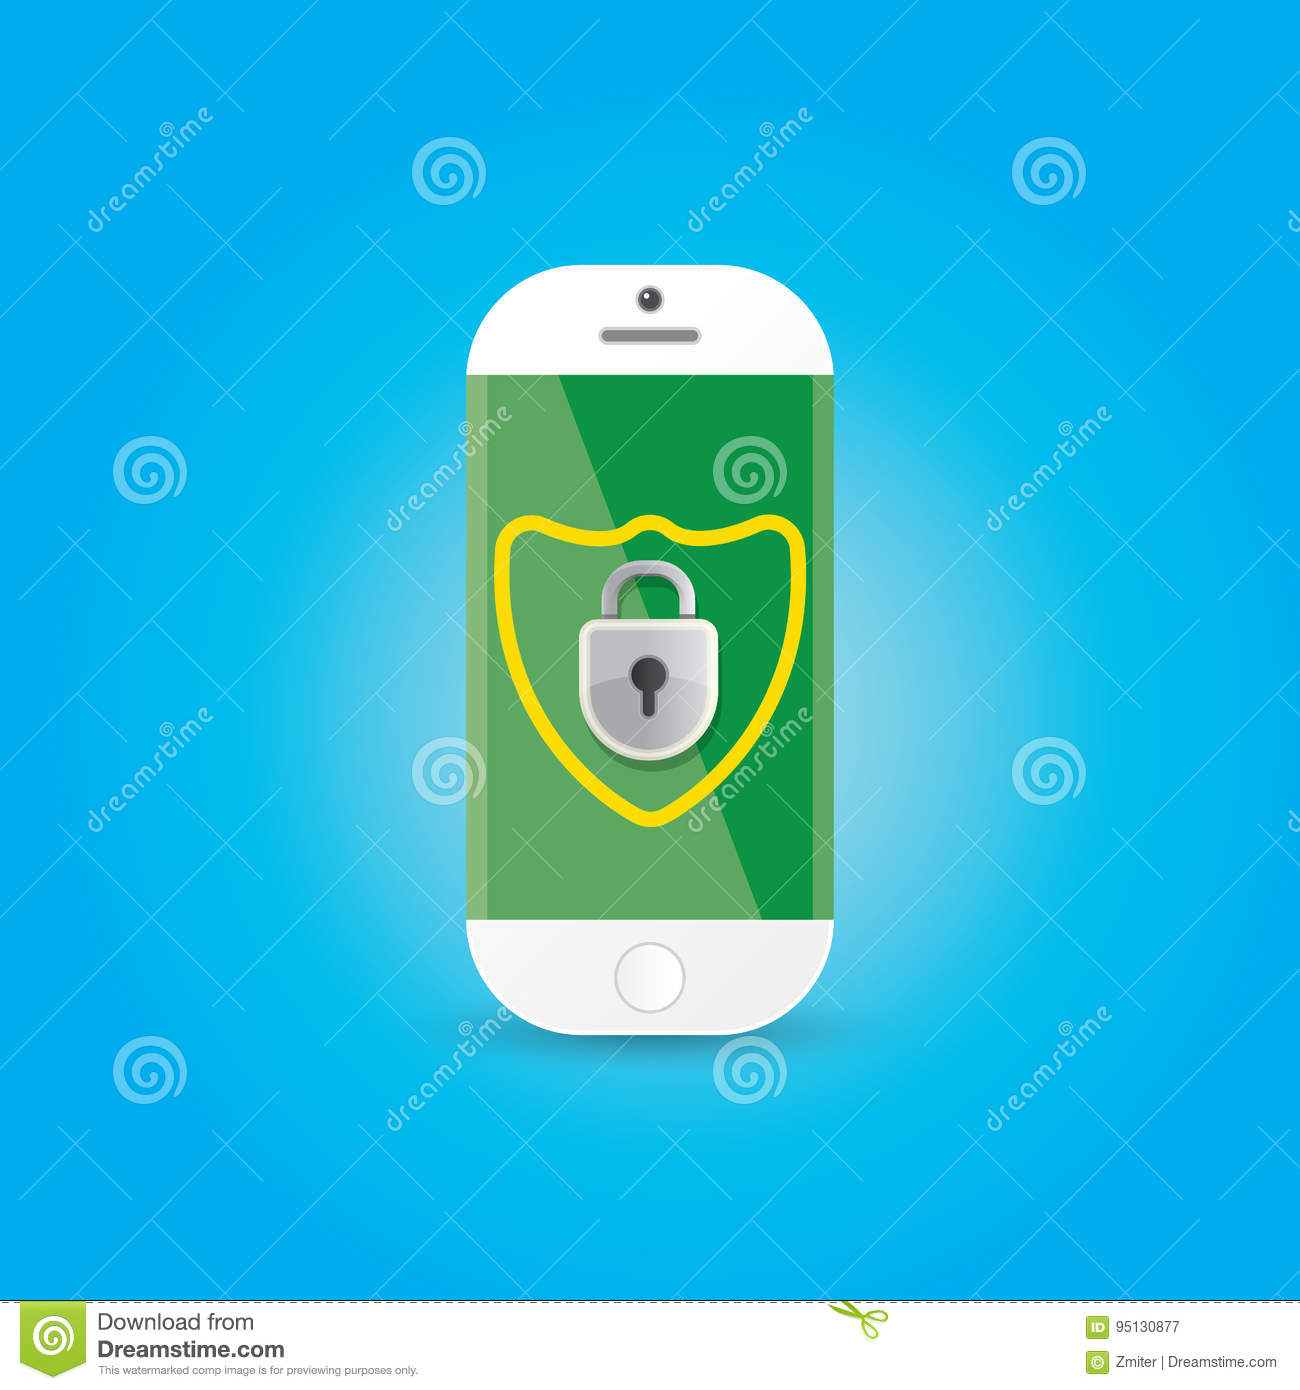 Mobile Security App Screen With Shield And Lock Stock Vector